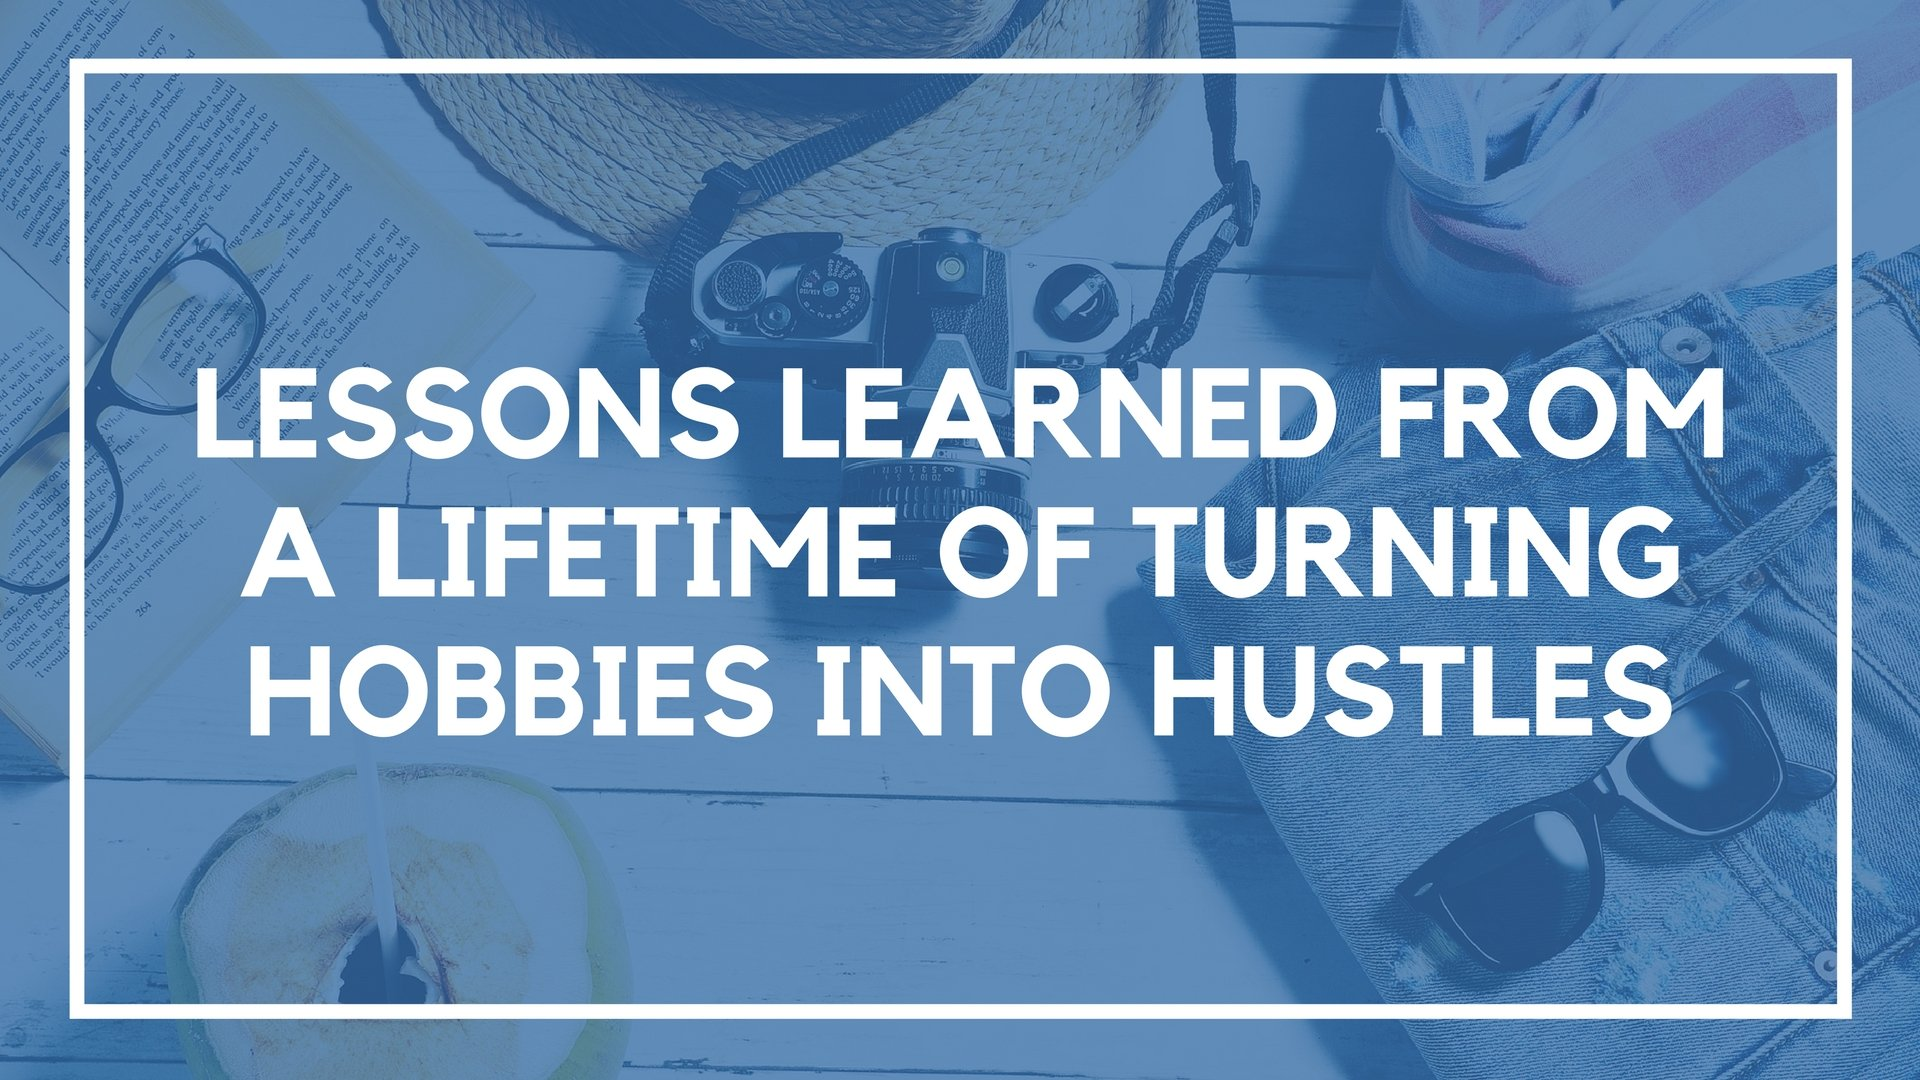 How to Turn a Hobby into a Hustle (7 Unique Strategies)